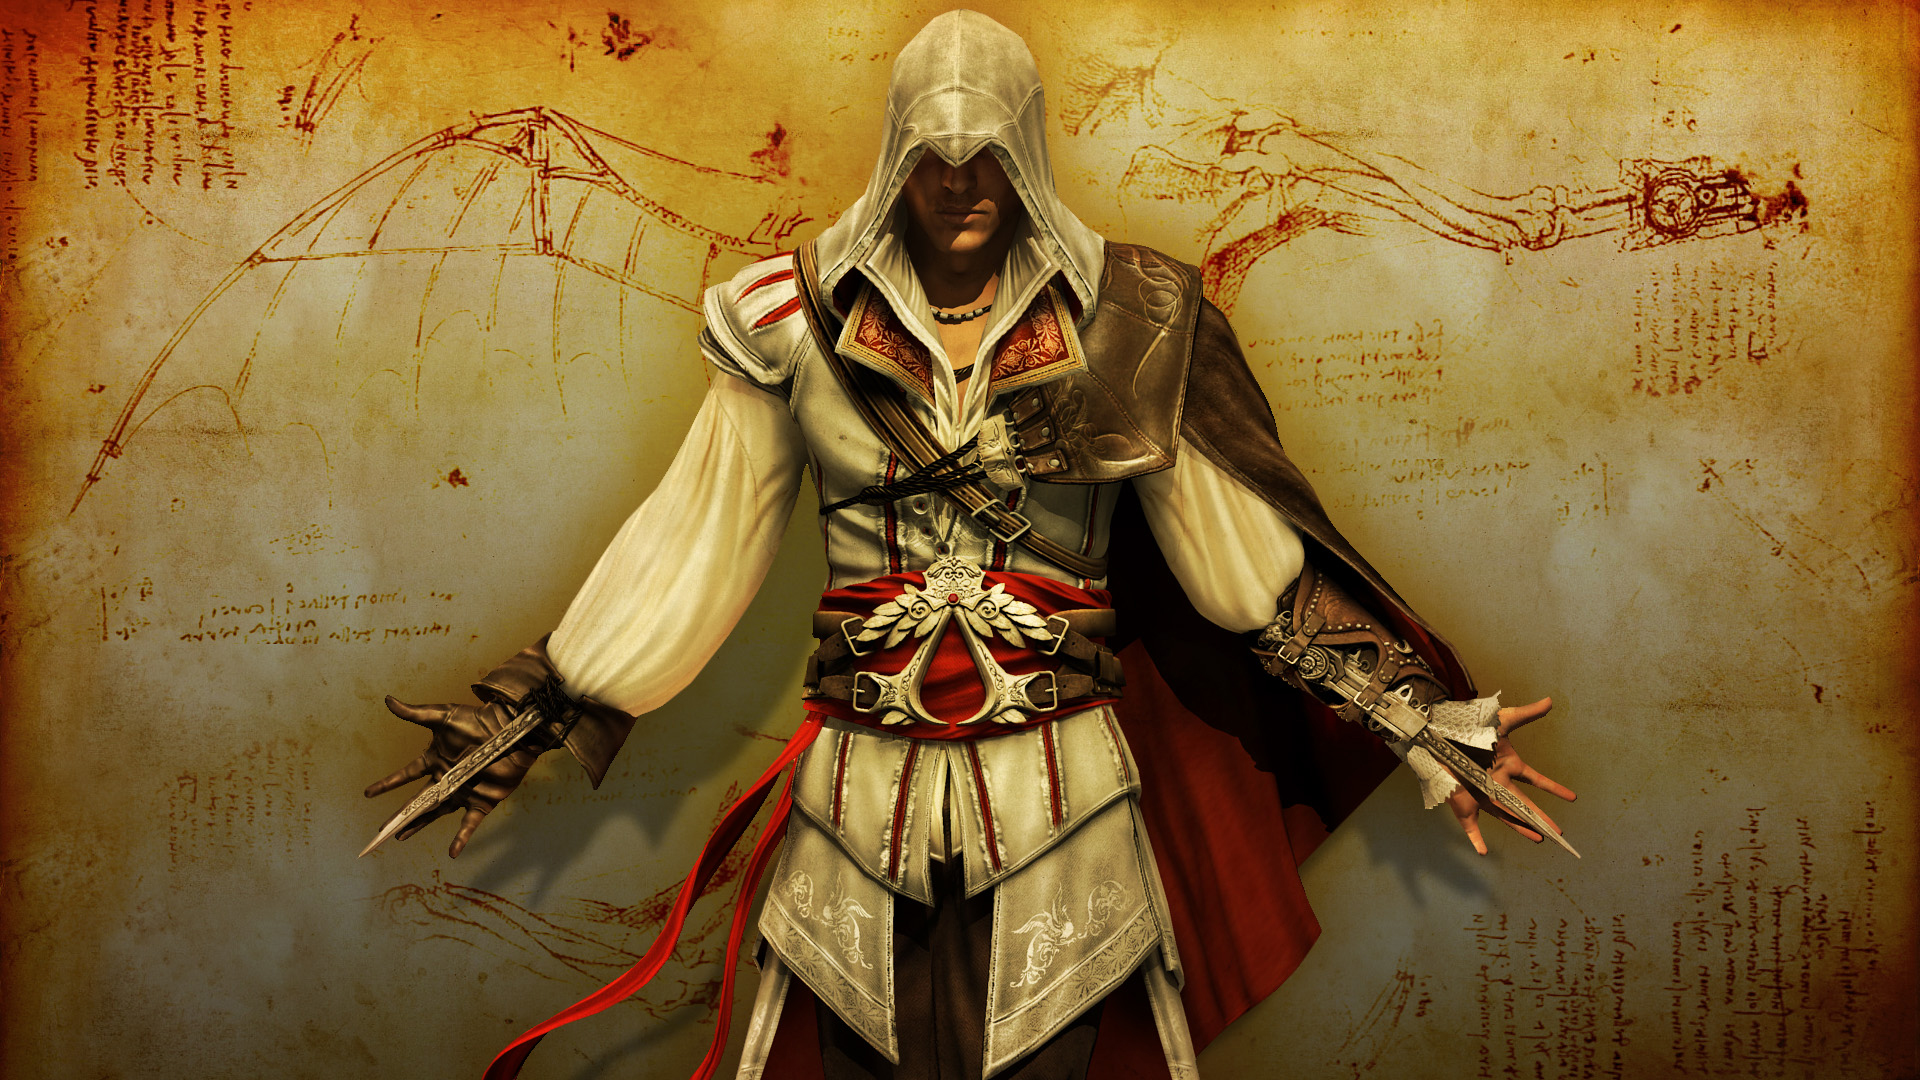 Assassins Creed II HQ Wallpapers HD Wallpapers